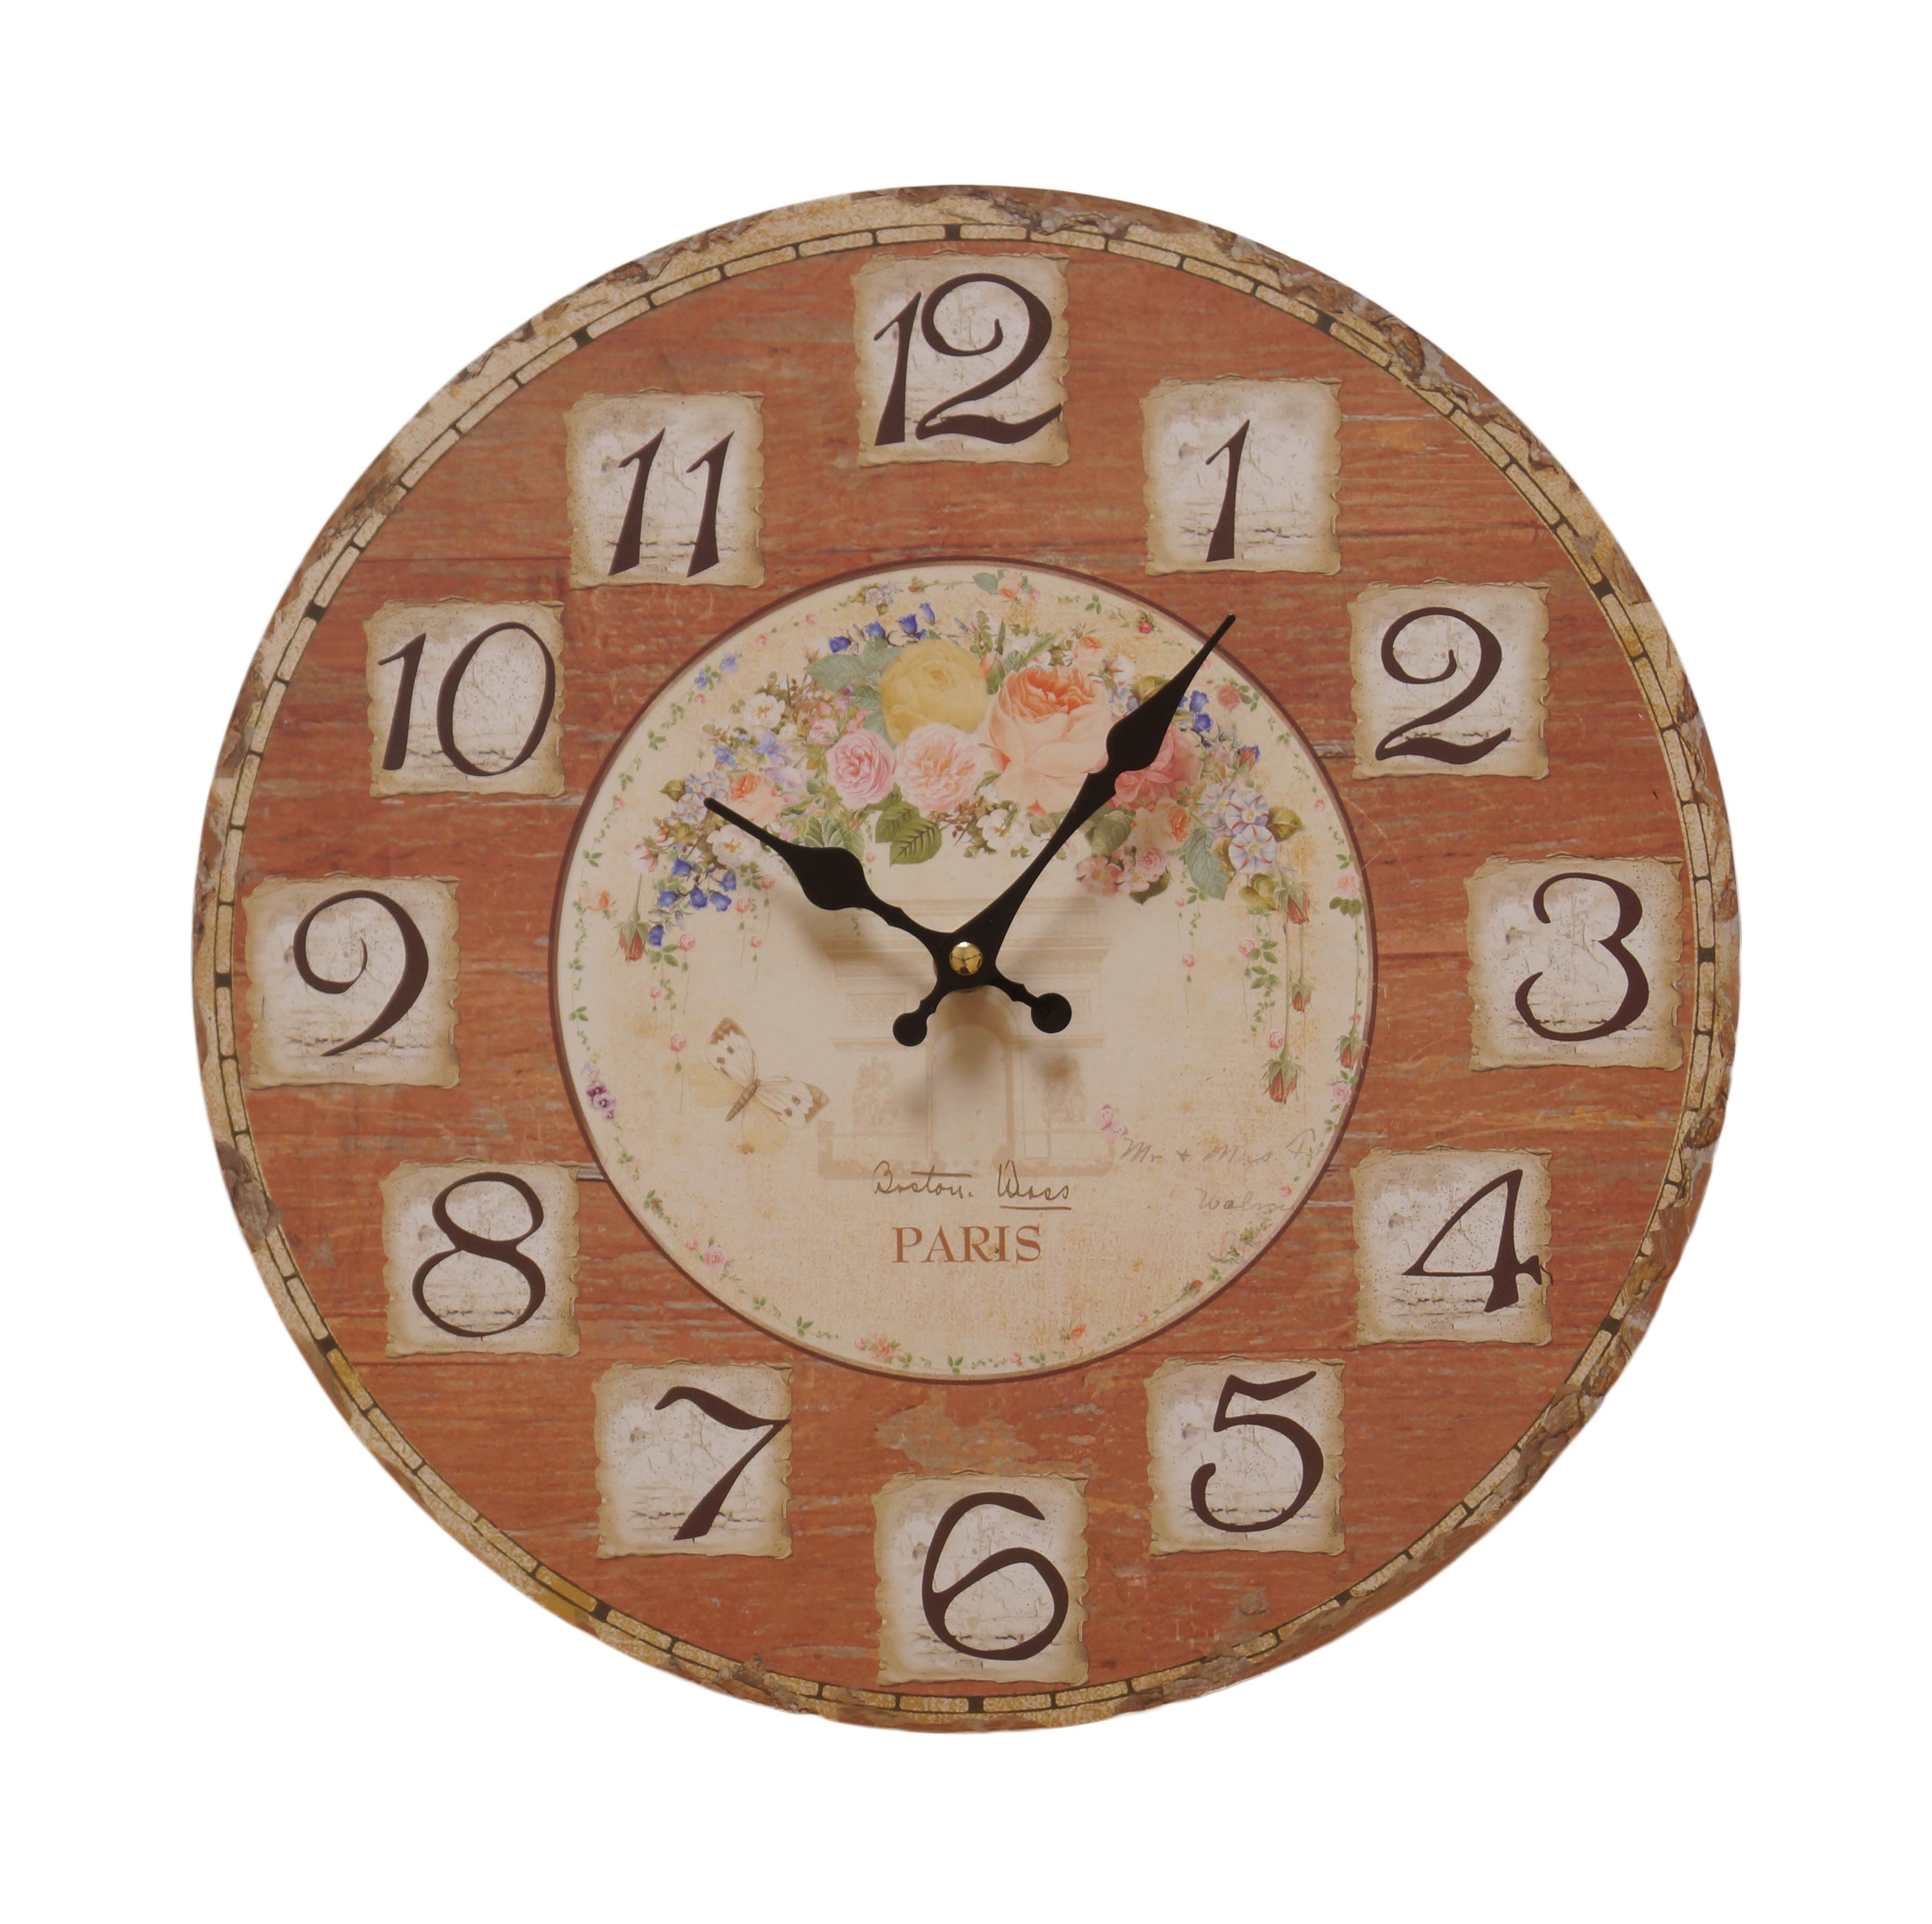 vintage retro holz wanduhr uhr 34cm shabby chic landhausstil used look antik ebay. Black Bedroom Furniture Sets. Home Design Ideas